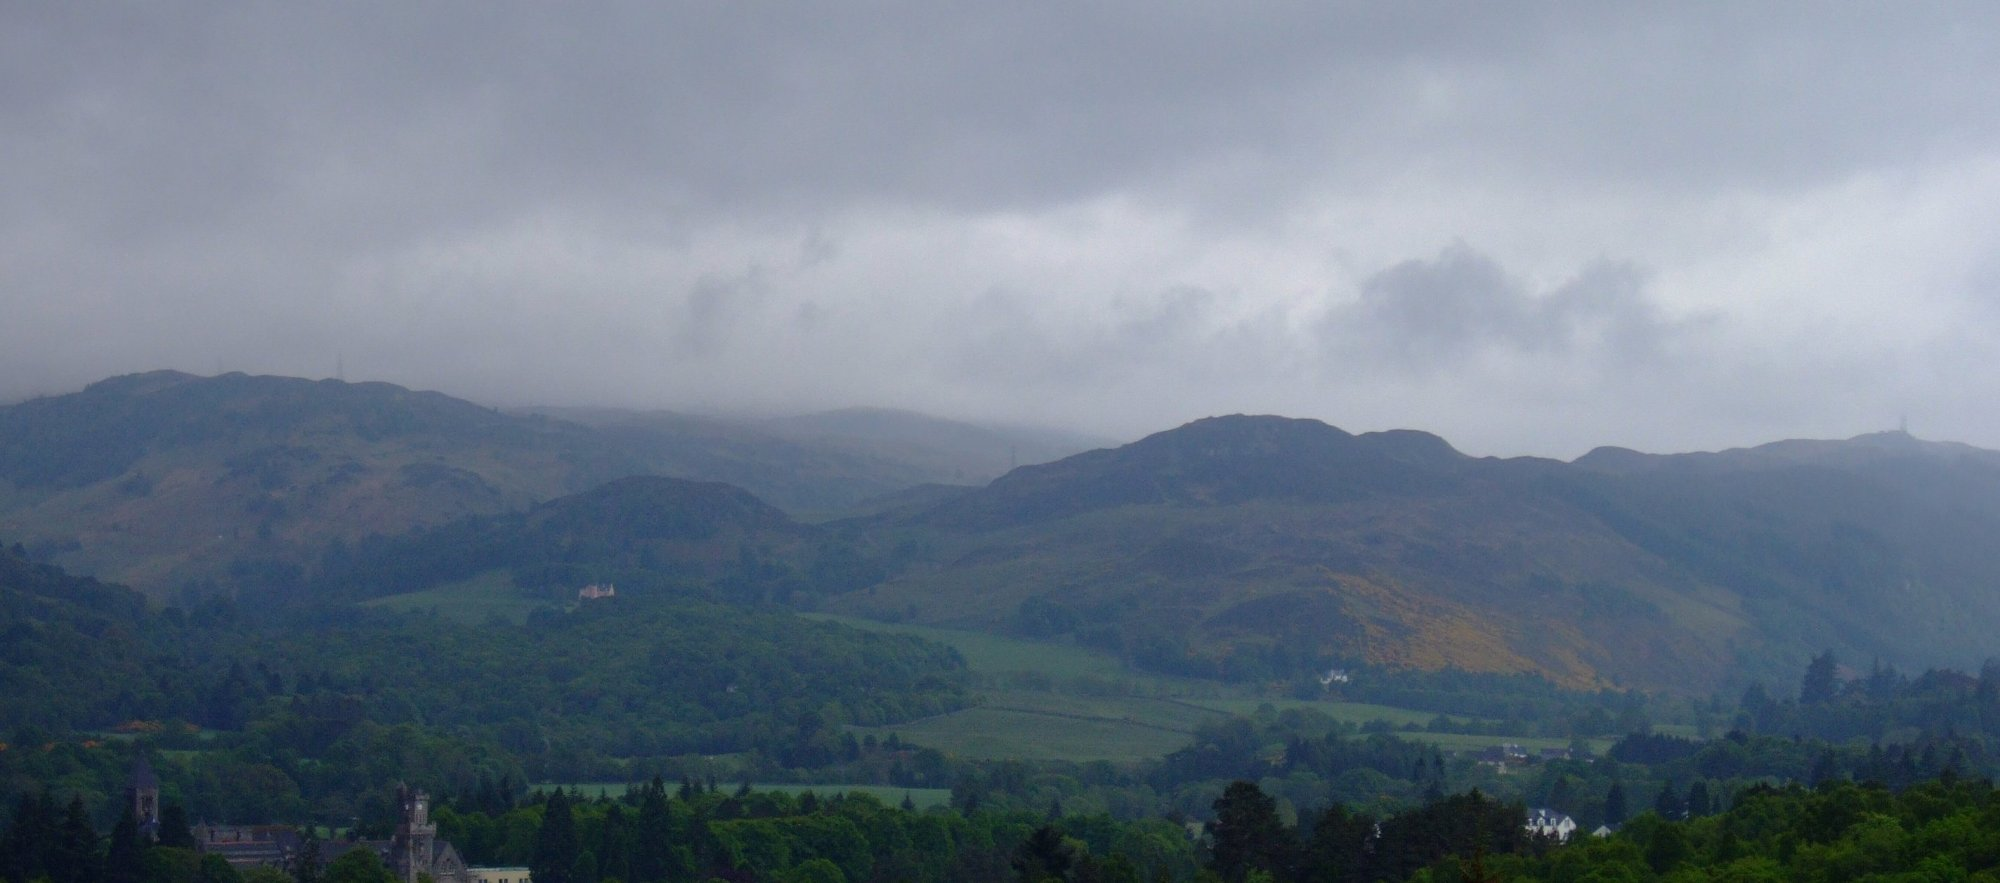 Grim looking skies above the hills